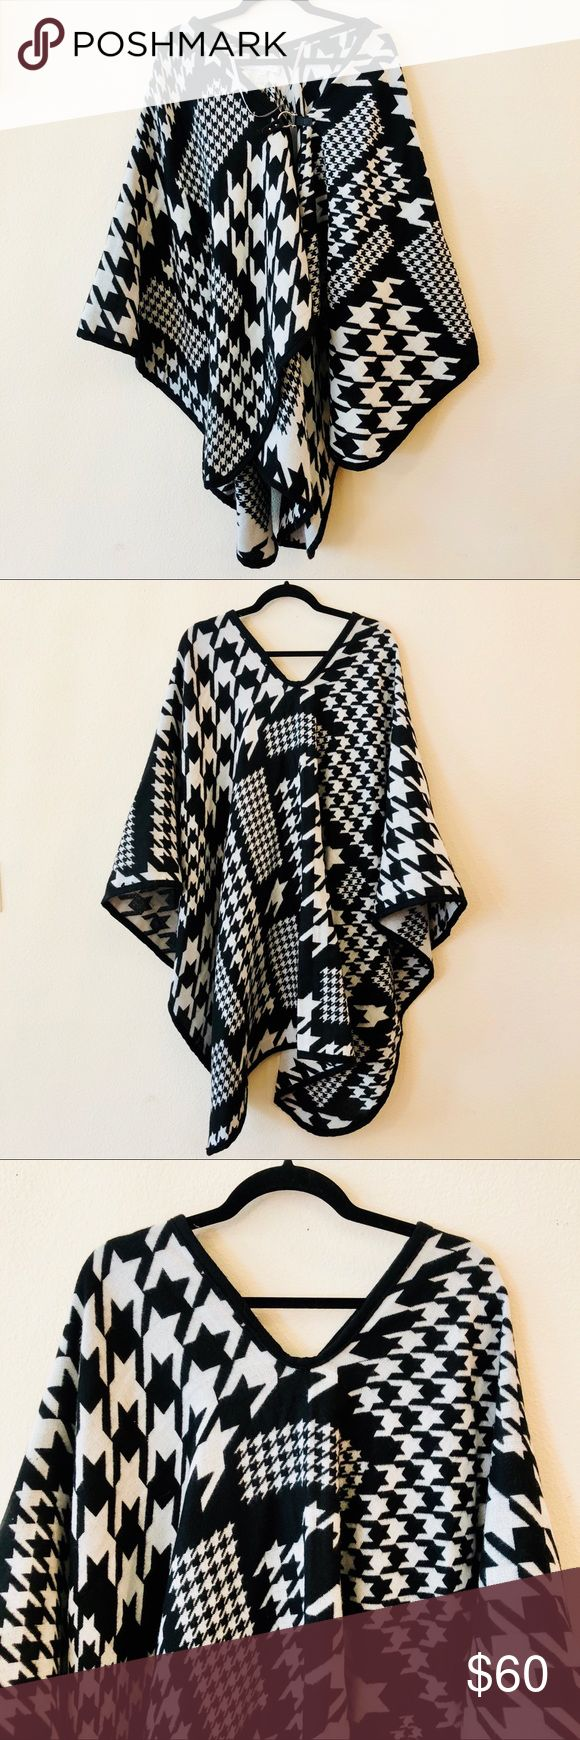 Andrew Marc Black N White Poncho Beautiful black and white geometrically patterned Andrew Marc poncho.  In mint condition.  Pay attention to the stirrup styled clasp in the front of the poncho. No detail was spared for this gorgeous piece of clothing.  Perfect for the winter weather or on days when it's warming up a bit! Small snag in fabric (pictured). Andrew Marc Sweaters Shrugs & Ponchos